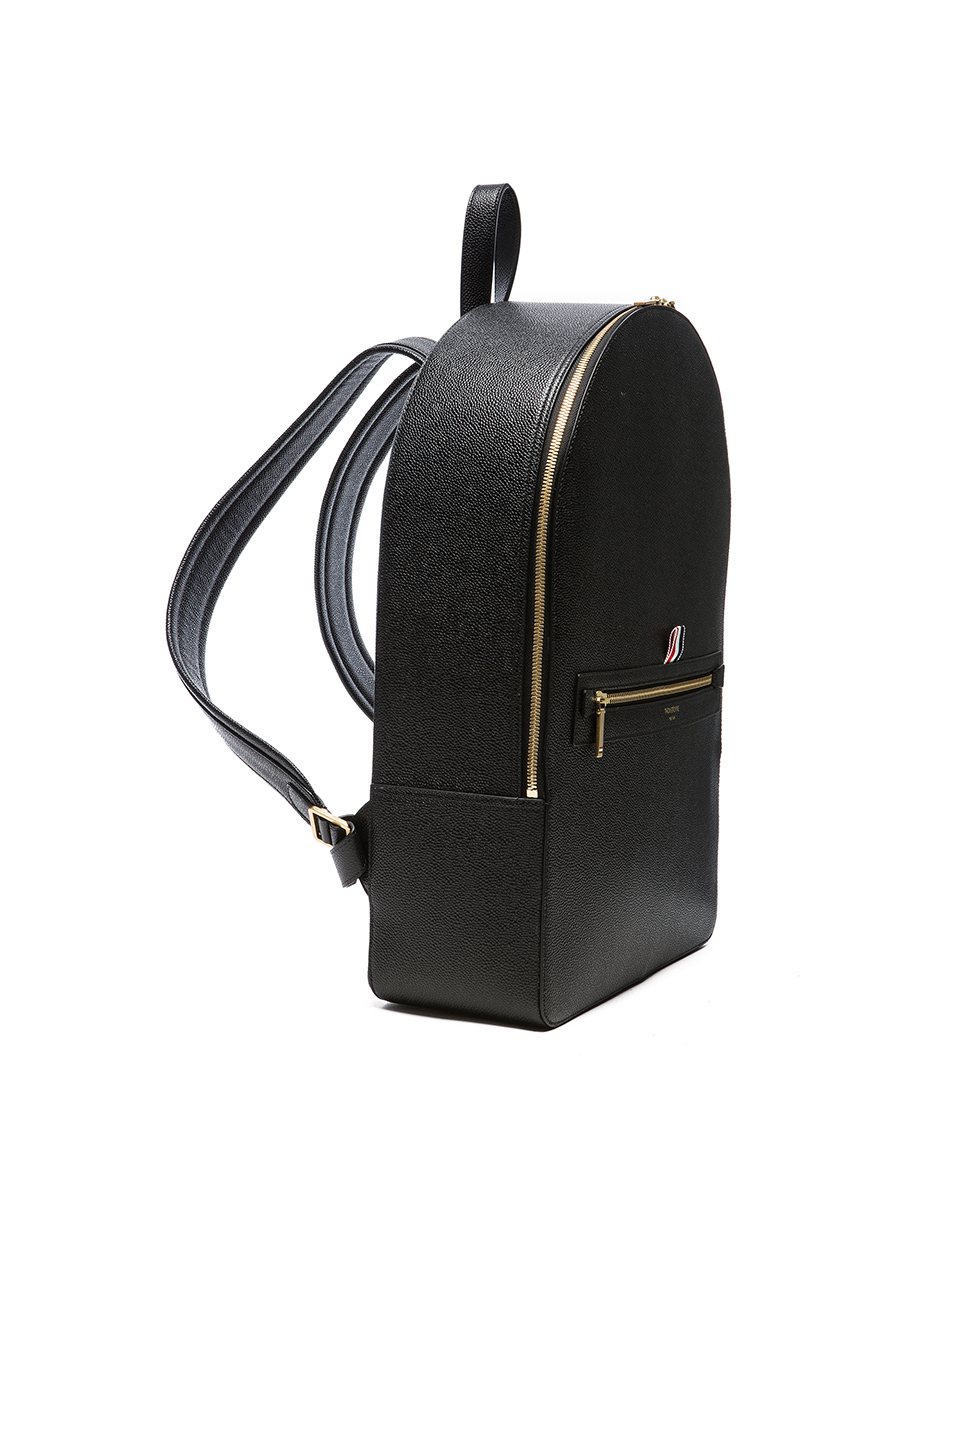 0c983c3e1b Jual Thom Browne Pebble Grain Backpack - 100% Original ...